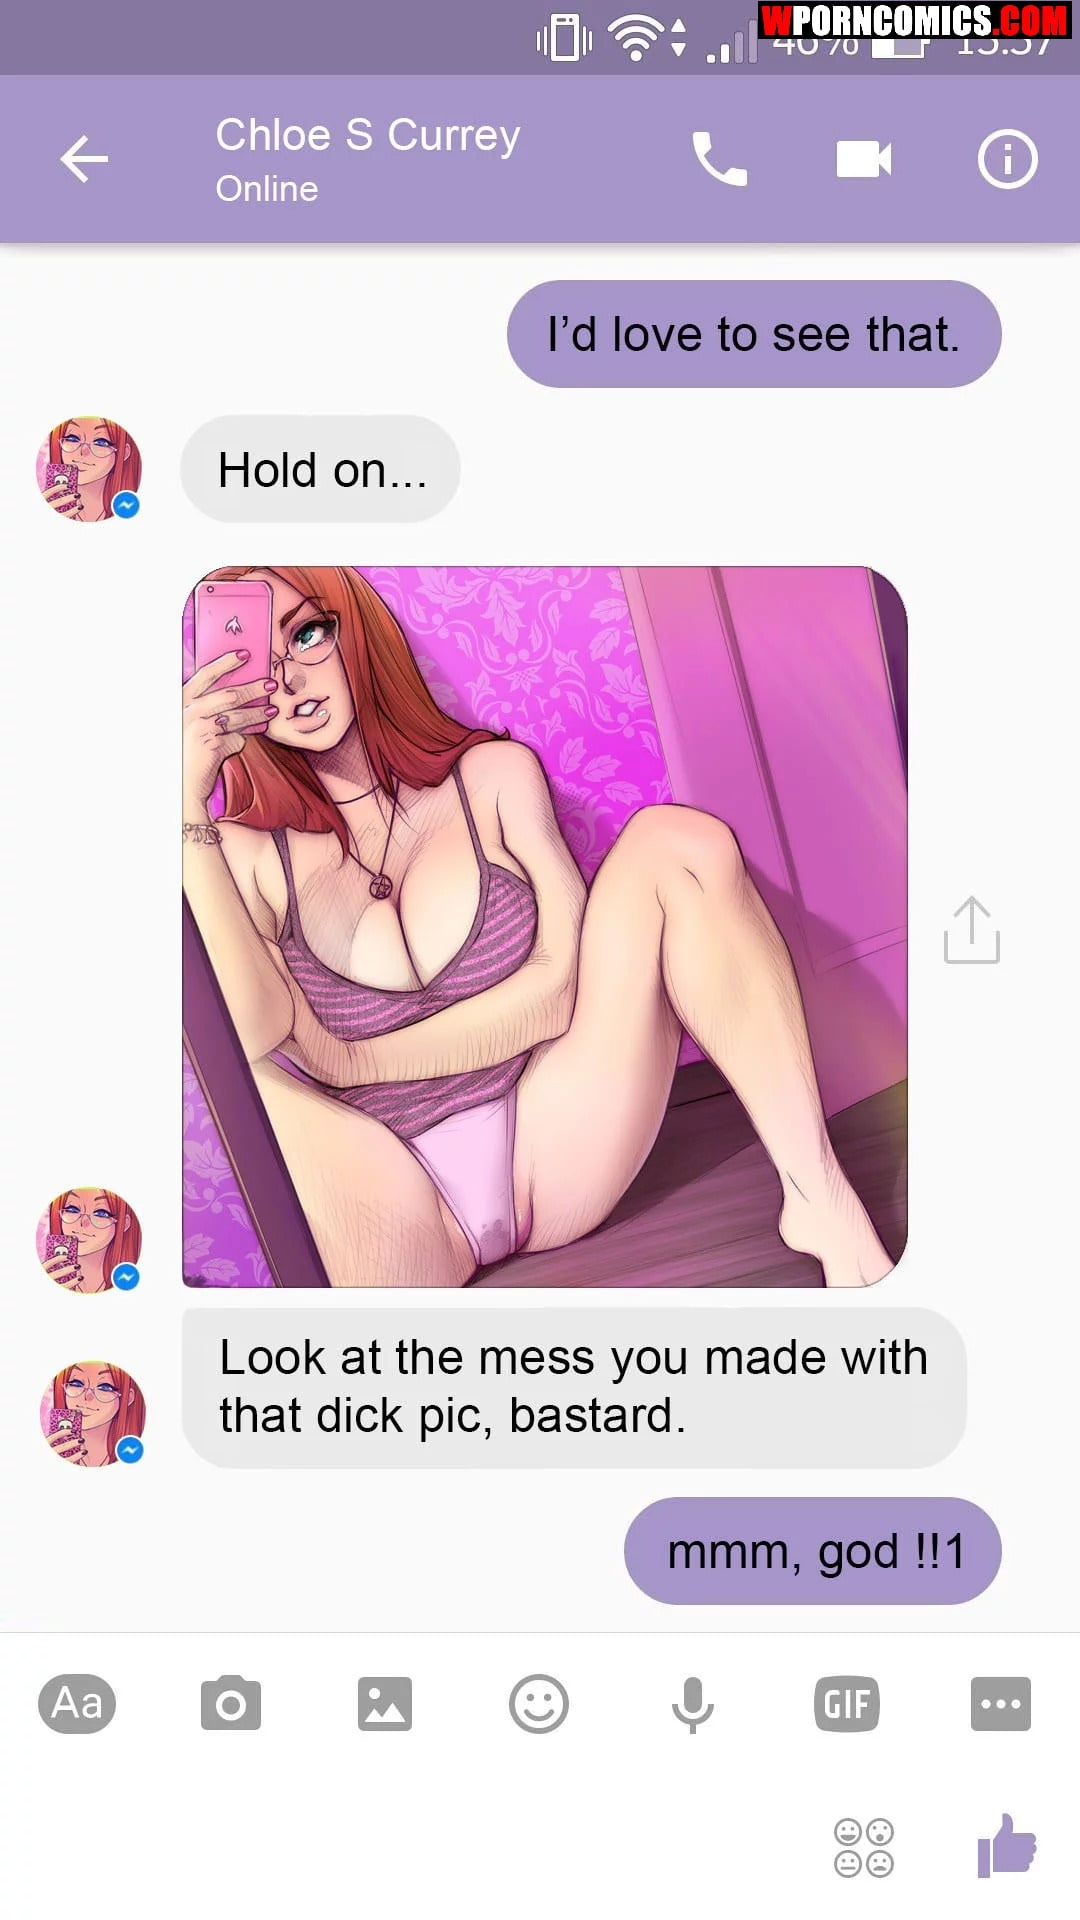 porn-comic-chat-with-chloe-2019-12-28/porn-comic-chat-with-chloe-2019-12-28-24014.jpg